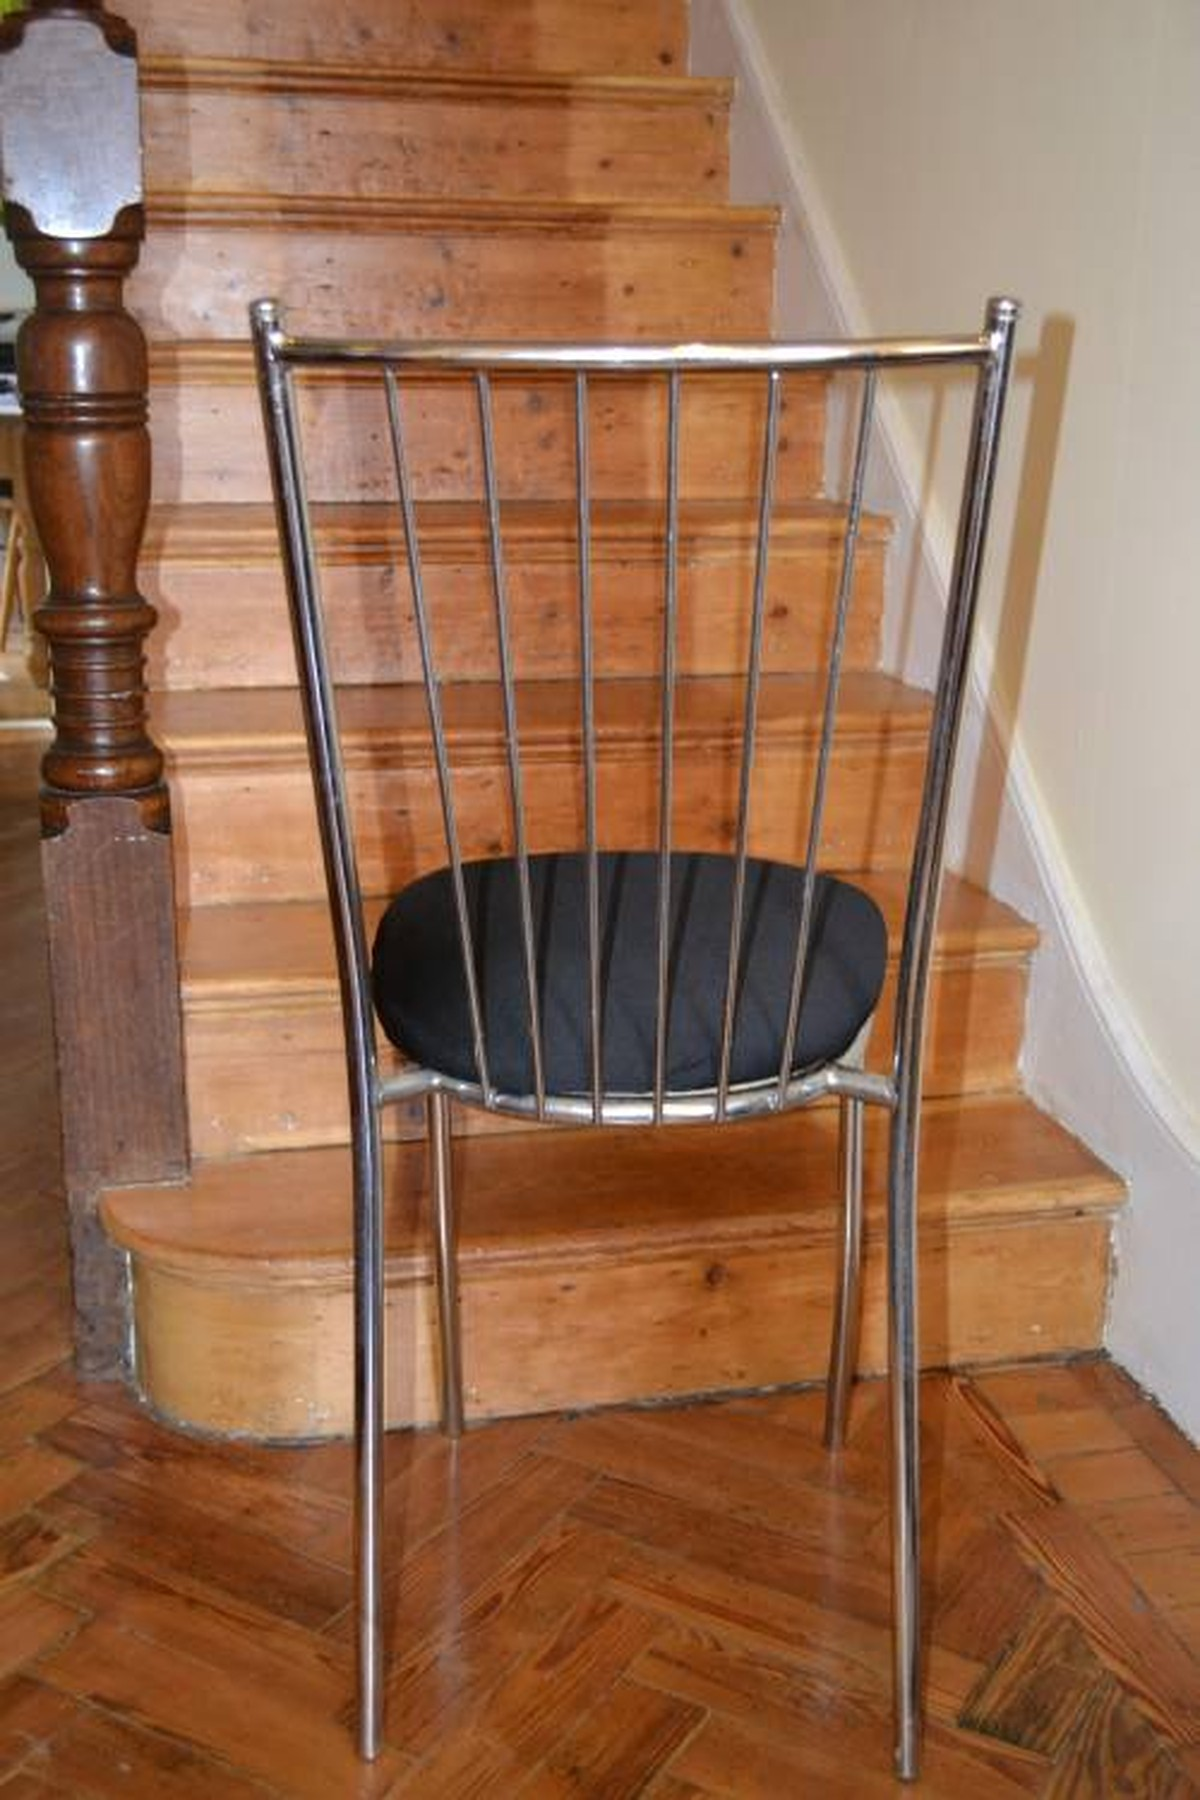 Secondhand Chairs and Tables  Cafe or Bistro Chairs